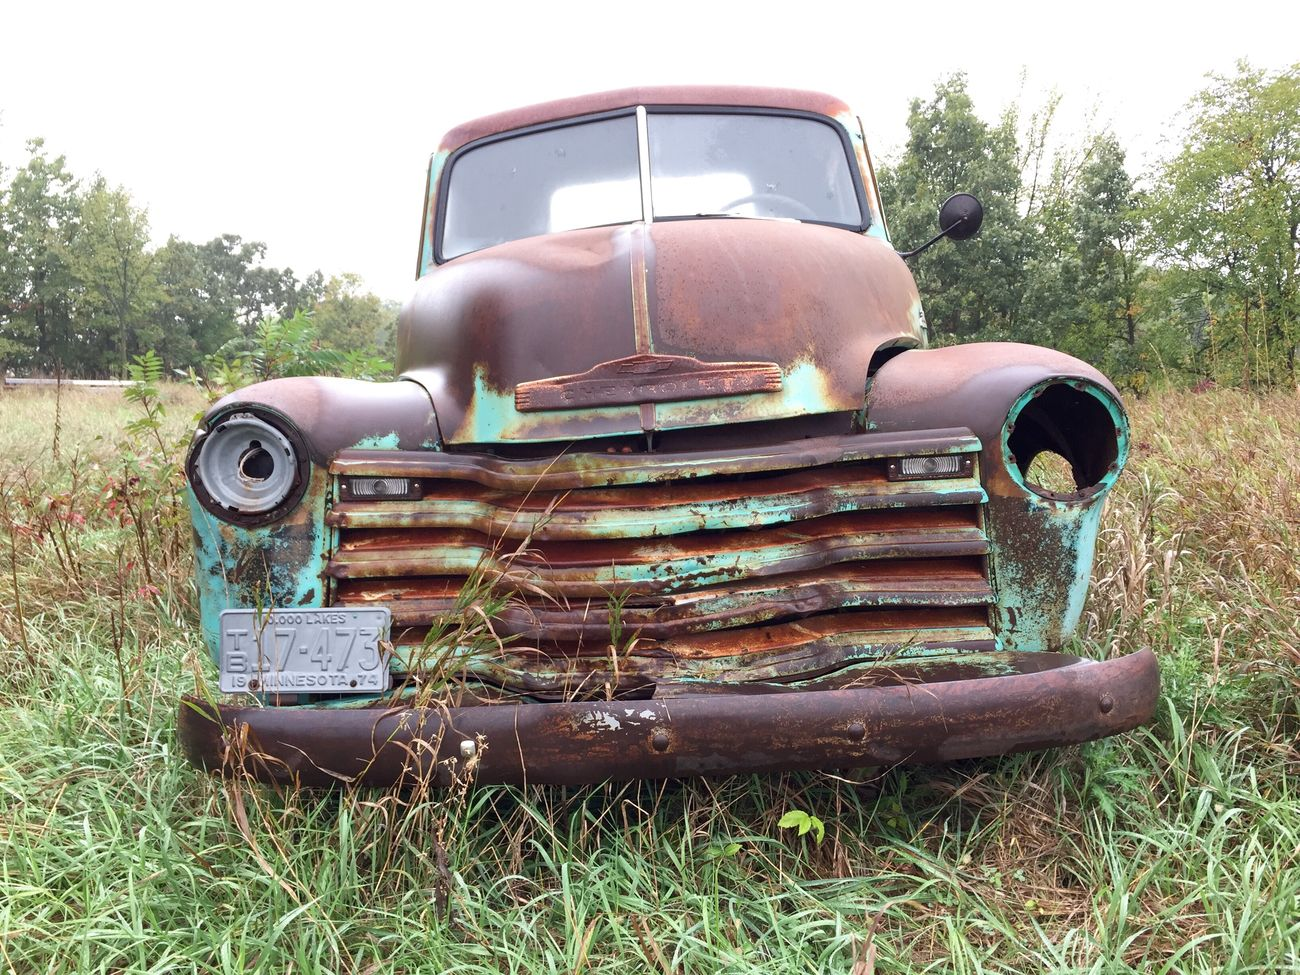 Abandoned Rusty Damaged Transportation Rural Scene Obsolete Old Land Vehicle Run-down Mode Of Transport Deterioration Field Front View Agriculture Outdoors Weathered Day The Past Farm Stationary Retro Antique Rusty Autos